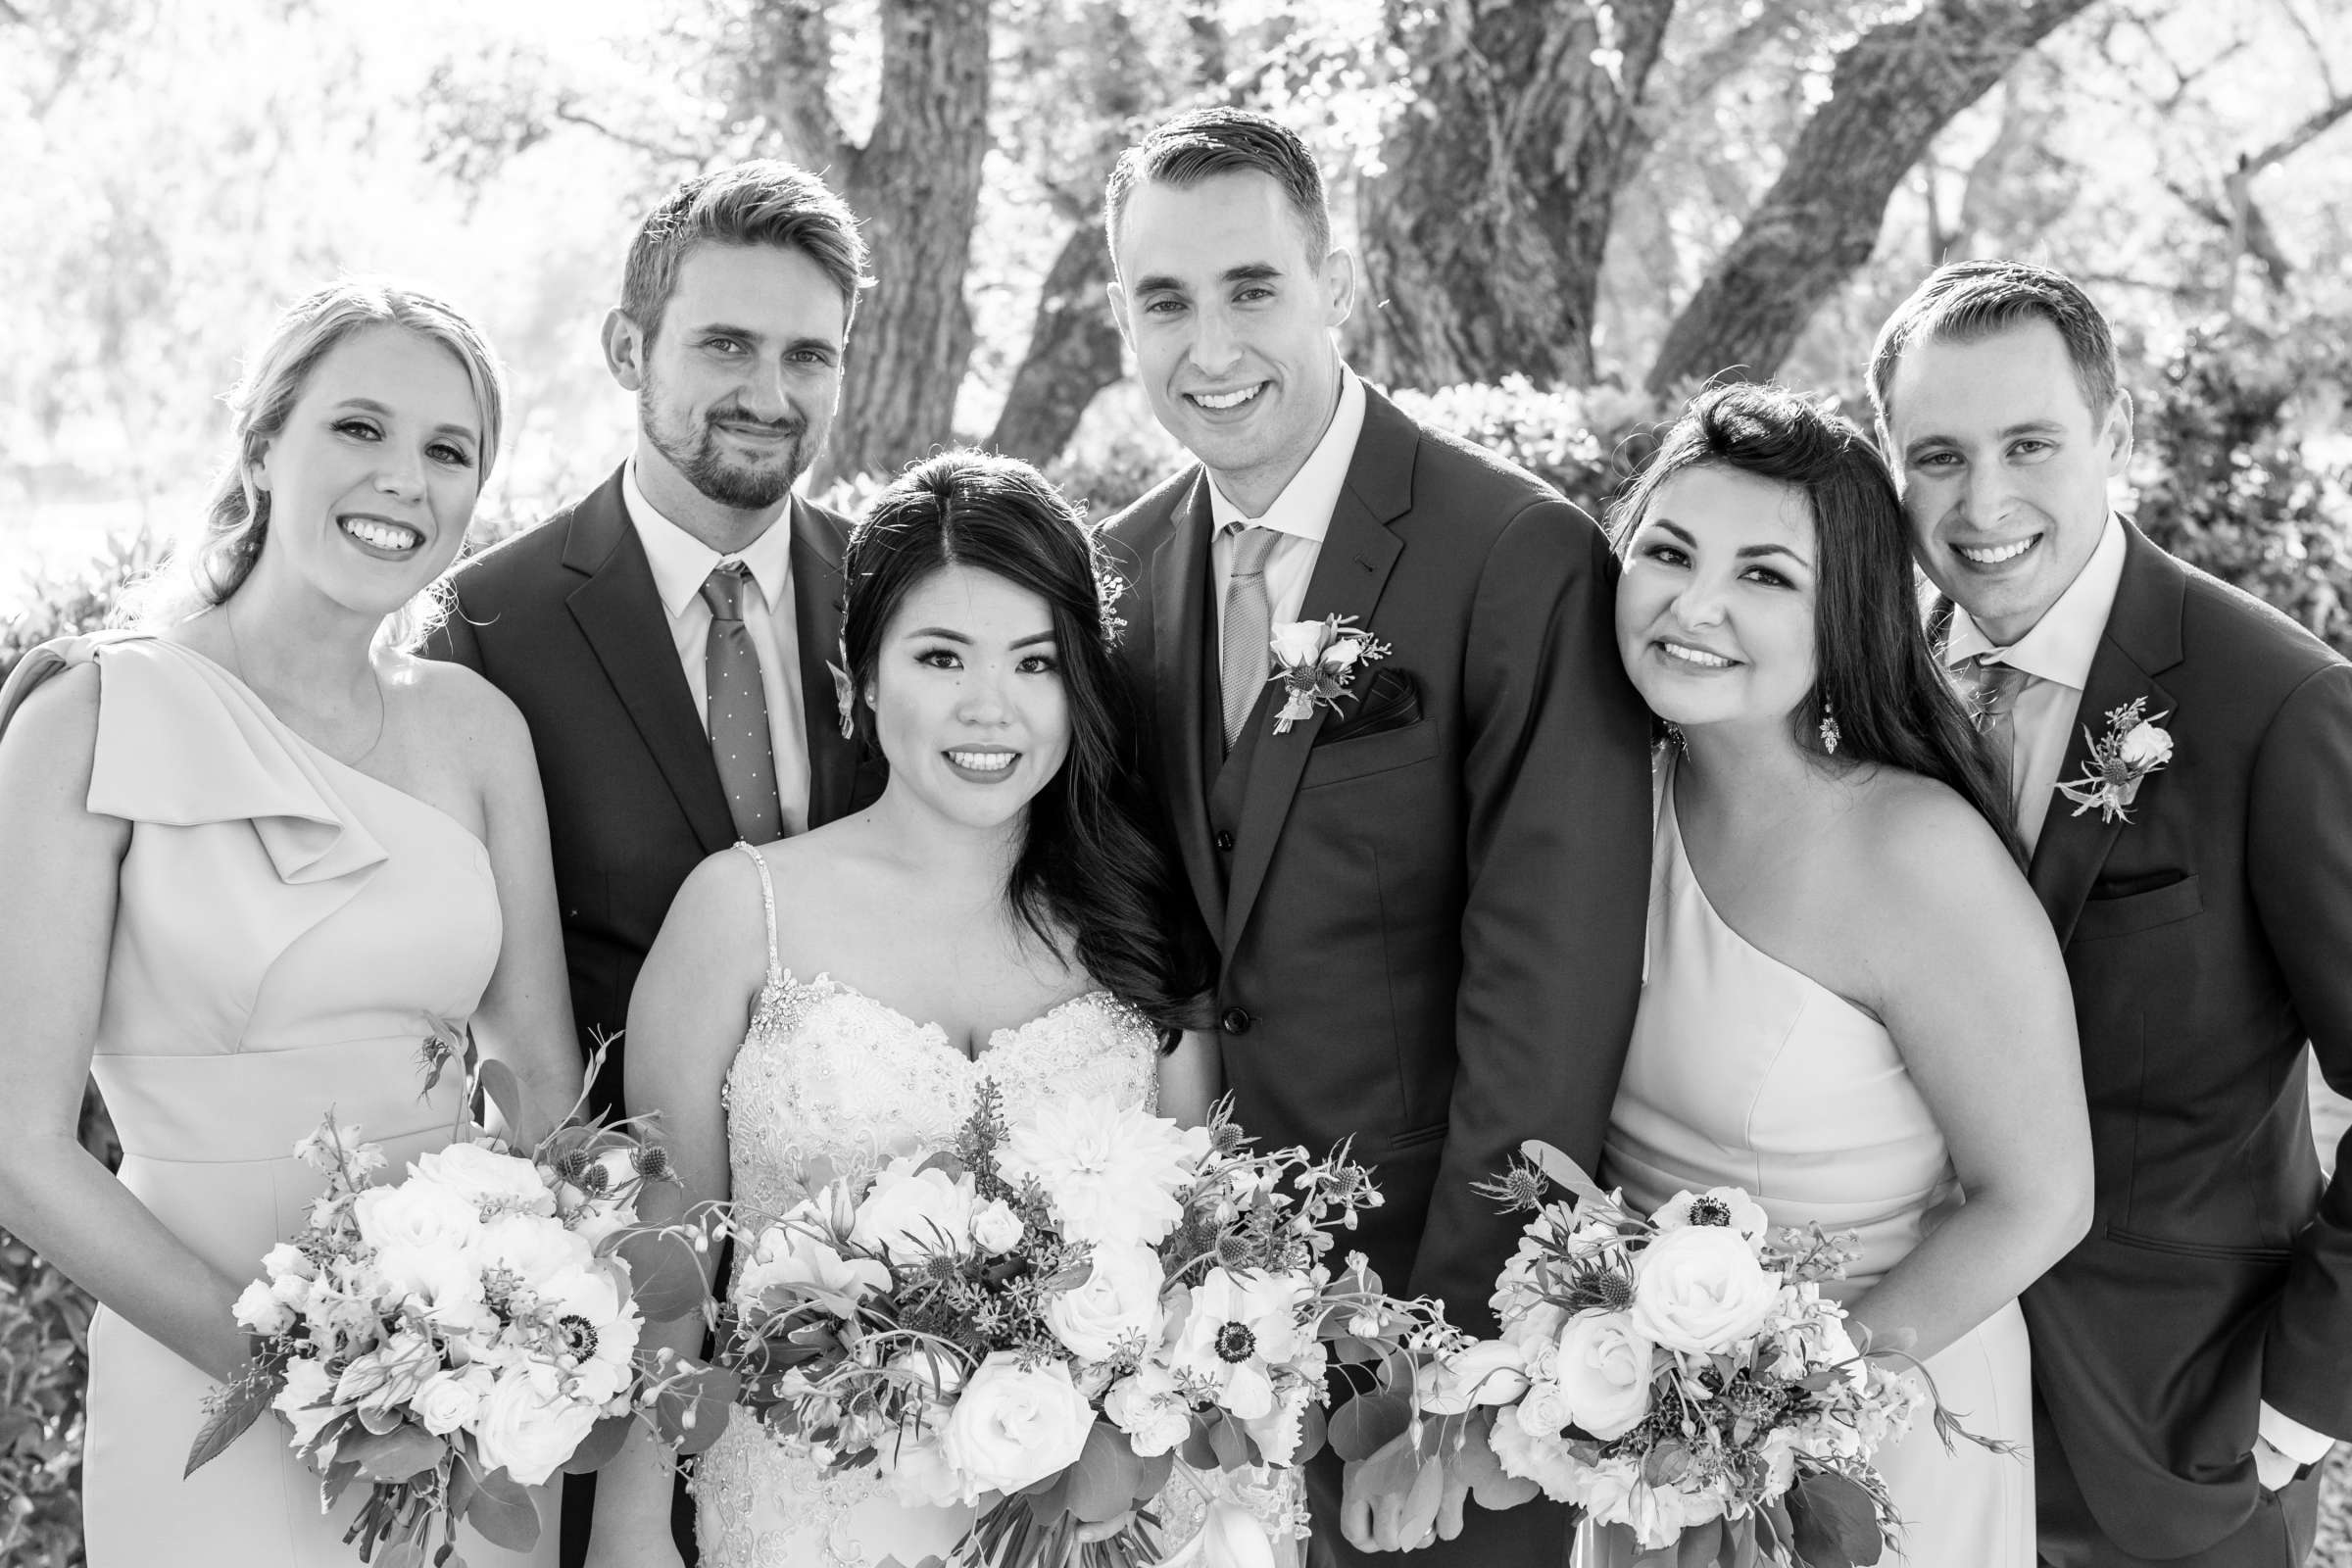 Mt Woodson Castle Wedding coordinated by I Do Weddings, Aya and Jared Wedding Photo #486969 by True Photography